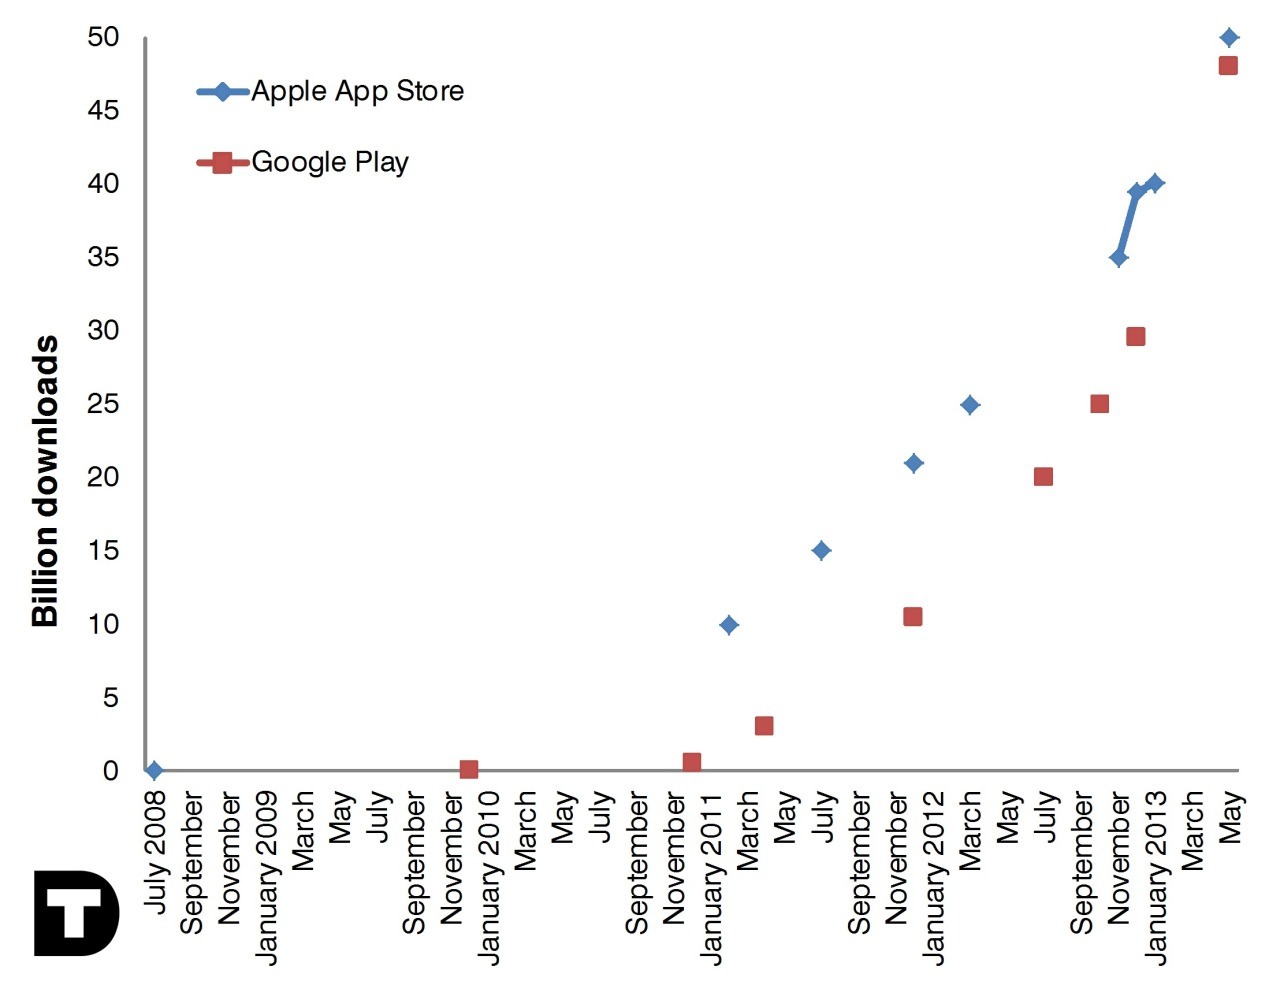 Apple App Store and Google Play downloads, 2008 - 2013 This week, both Apple and Google have released new download numbers for their mobile app stores. Apple has served 50 billion app downloads, while Google is just behind with 48 billion downloads. These are huge numbers and both growth curves are remarkable, even though it certainly looks like Google Play soon will surpass the App Store in terms of total downloads.